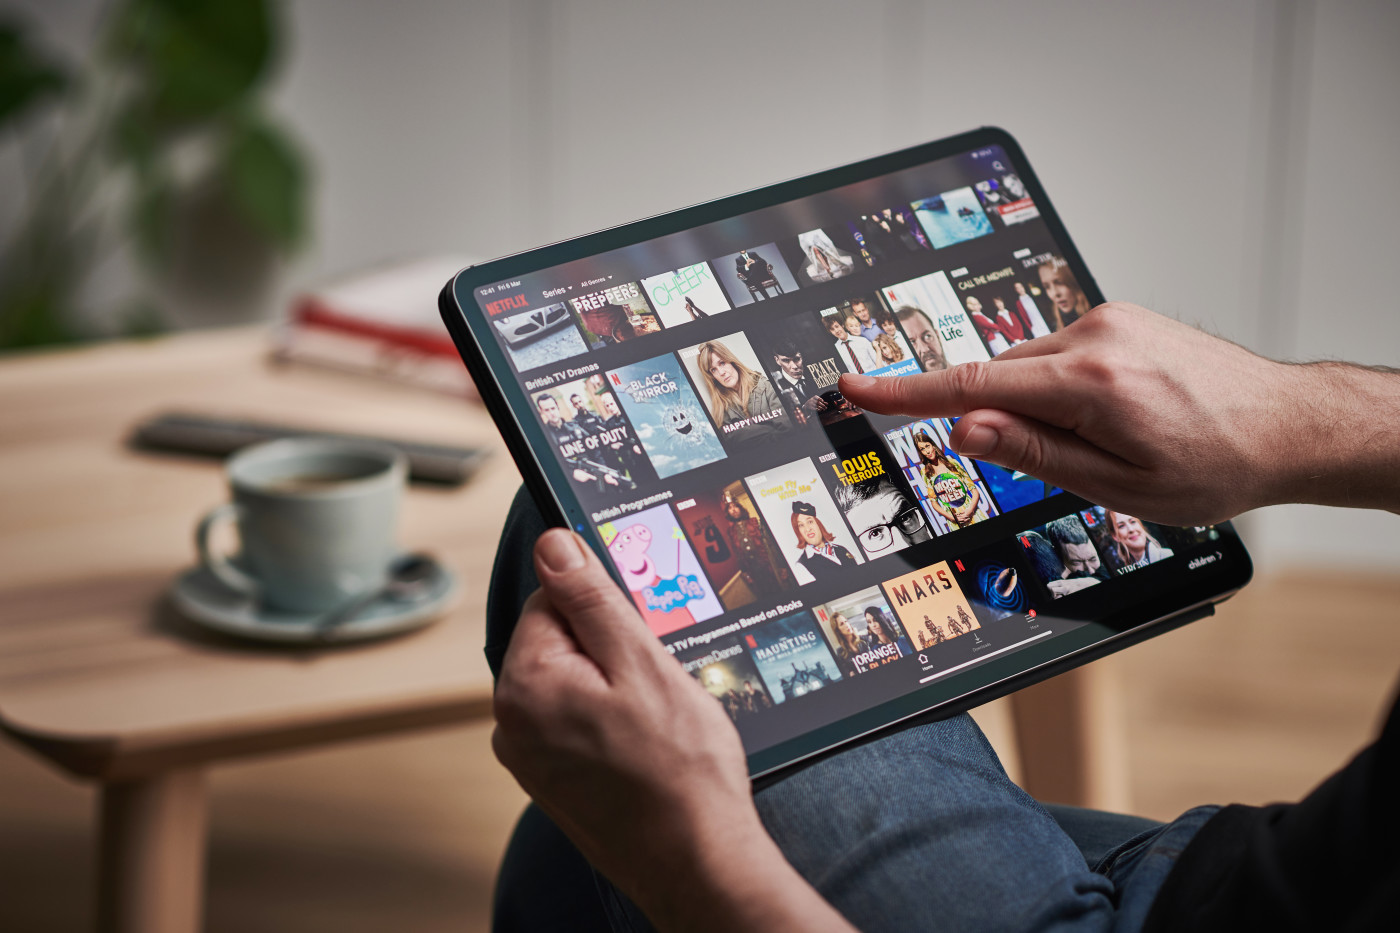 Hands holding iPad Pro with Netflix selection on screen